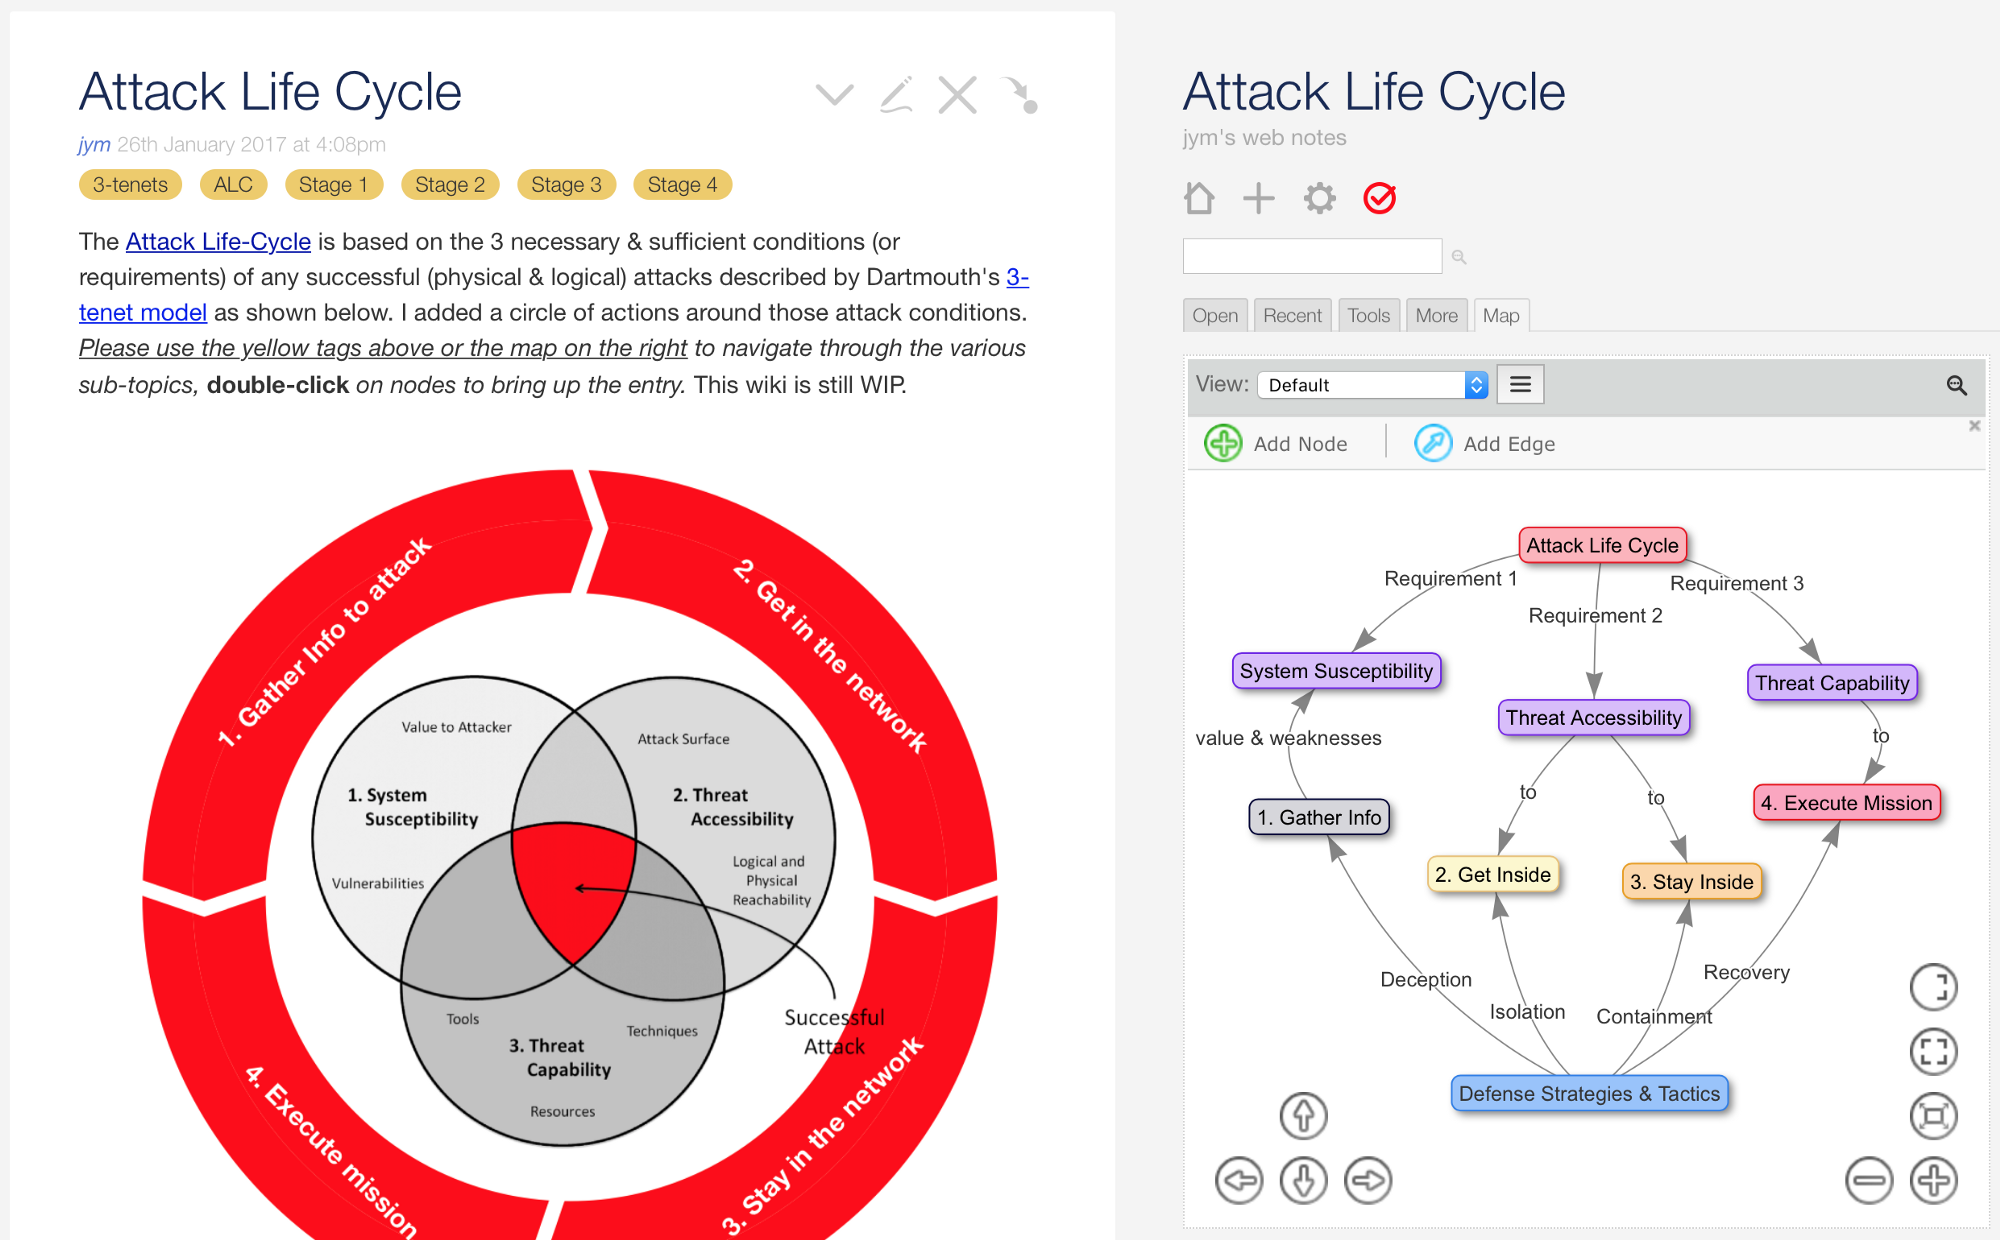 Read only mind map wiki jym medium after evaluating a number of mind map services on desktopios browsers apps i finally settled with httptiddlymap which is essentially powered by ccuart Choice Image